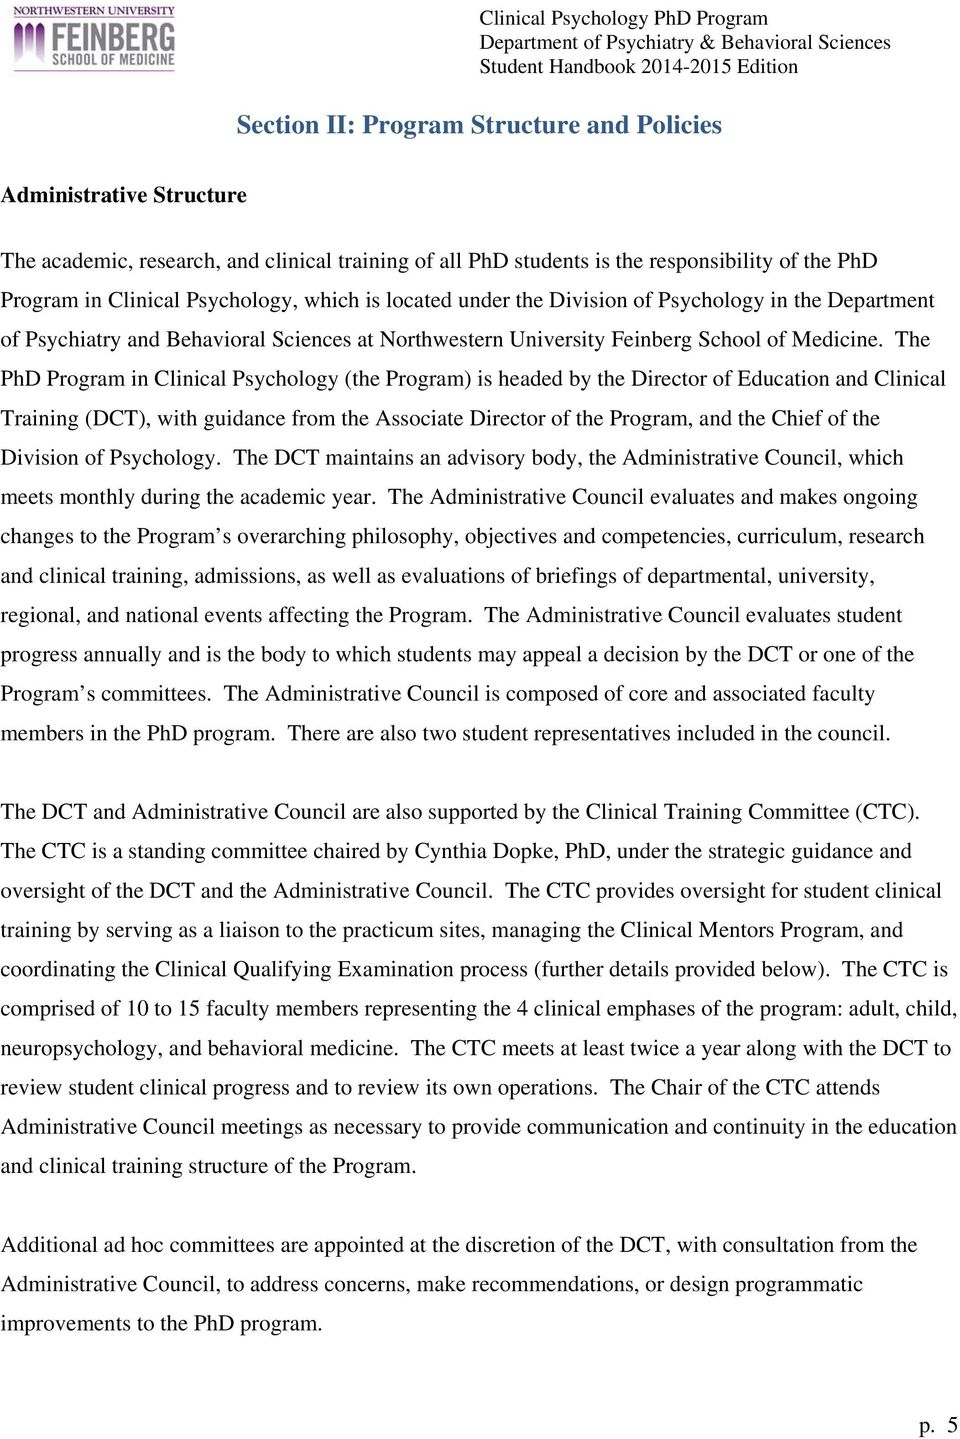 The PhD Program in Clinical Psychology (the Program) is headed by the Director of Education and Clinical Training (DCT), with guidance from the Associate Director of the Program, and the Chief of the